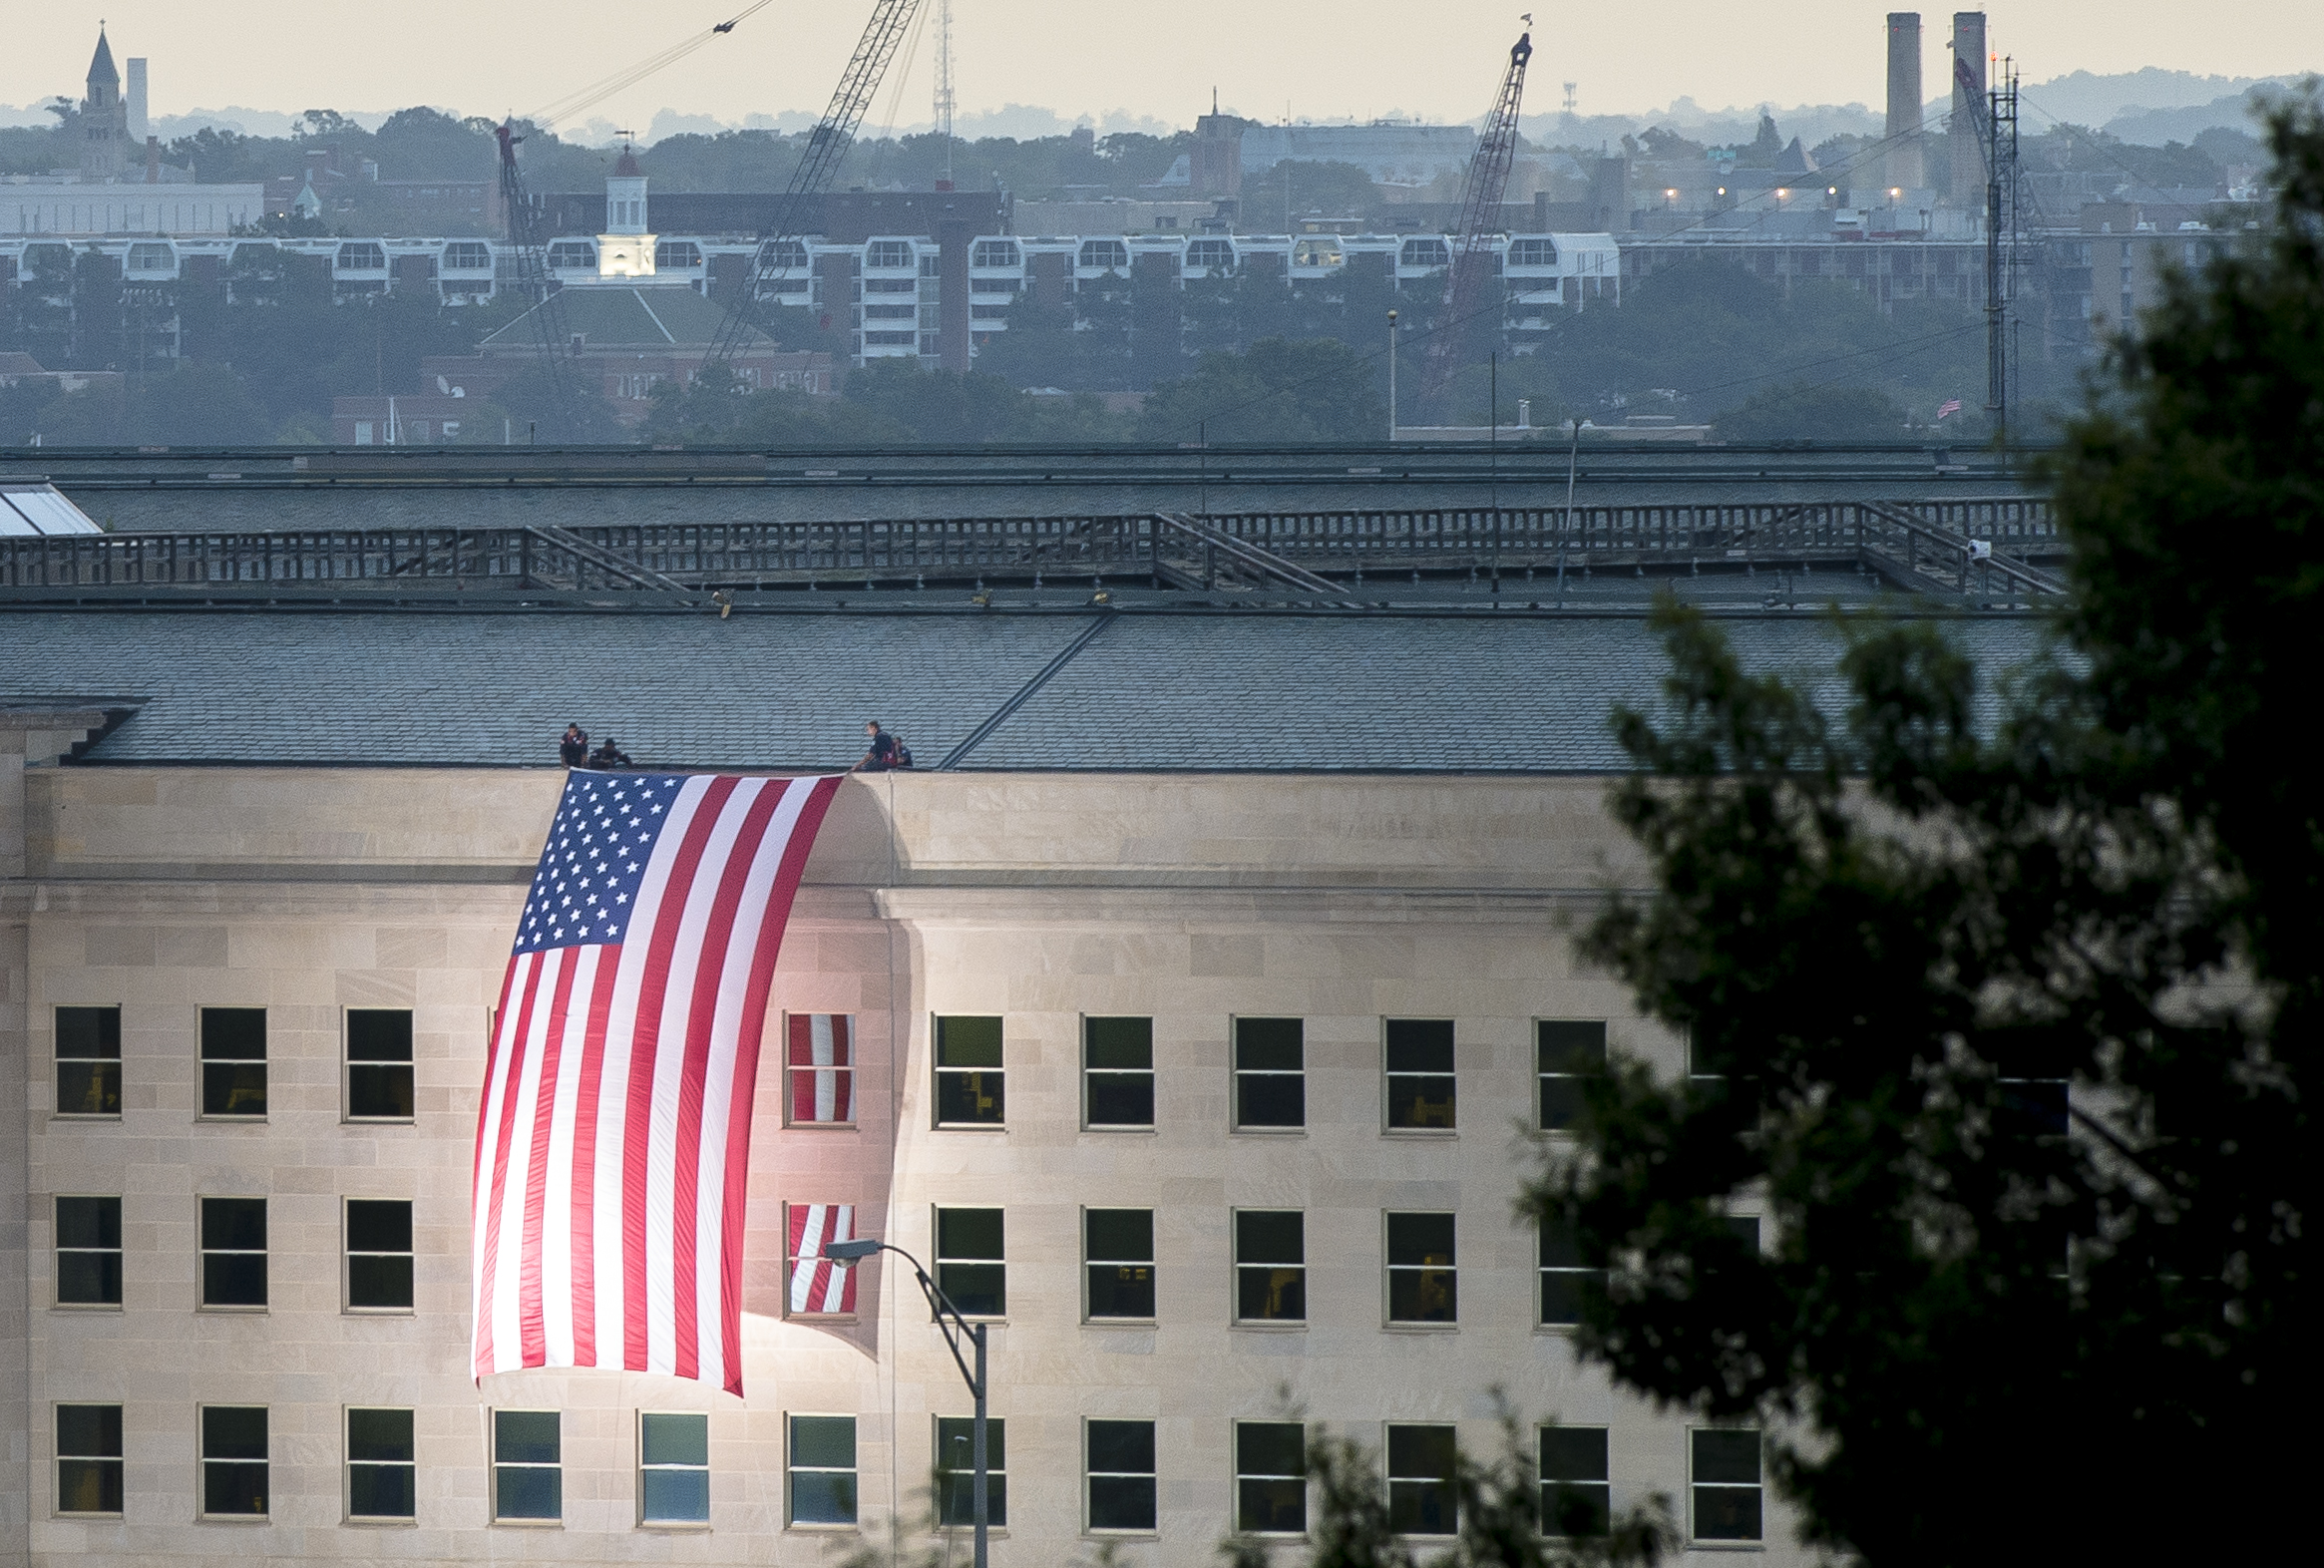 U.S. flag over the side of the Pentagon